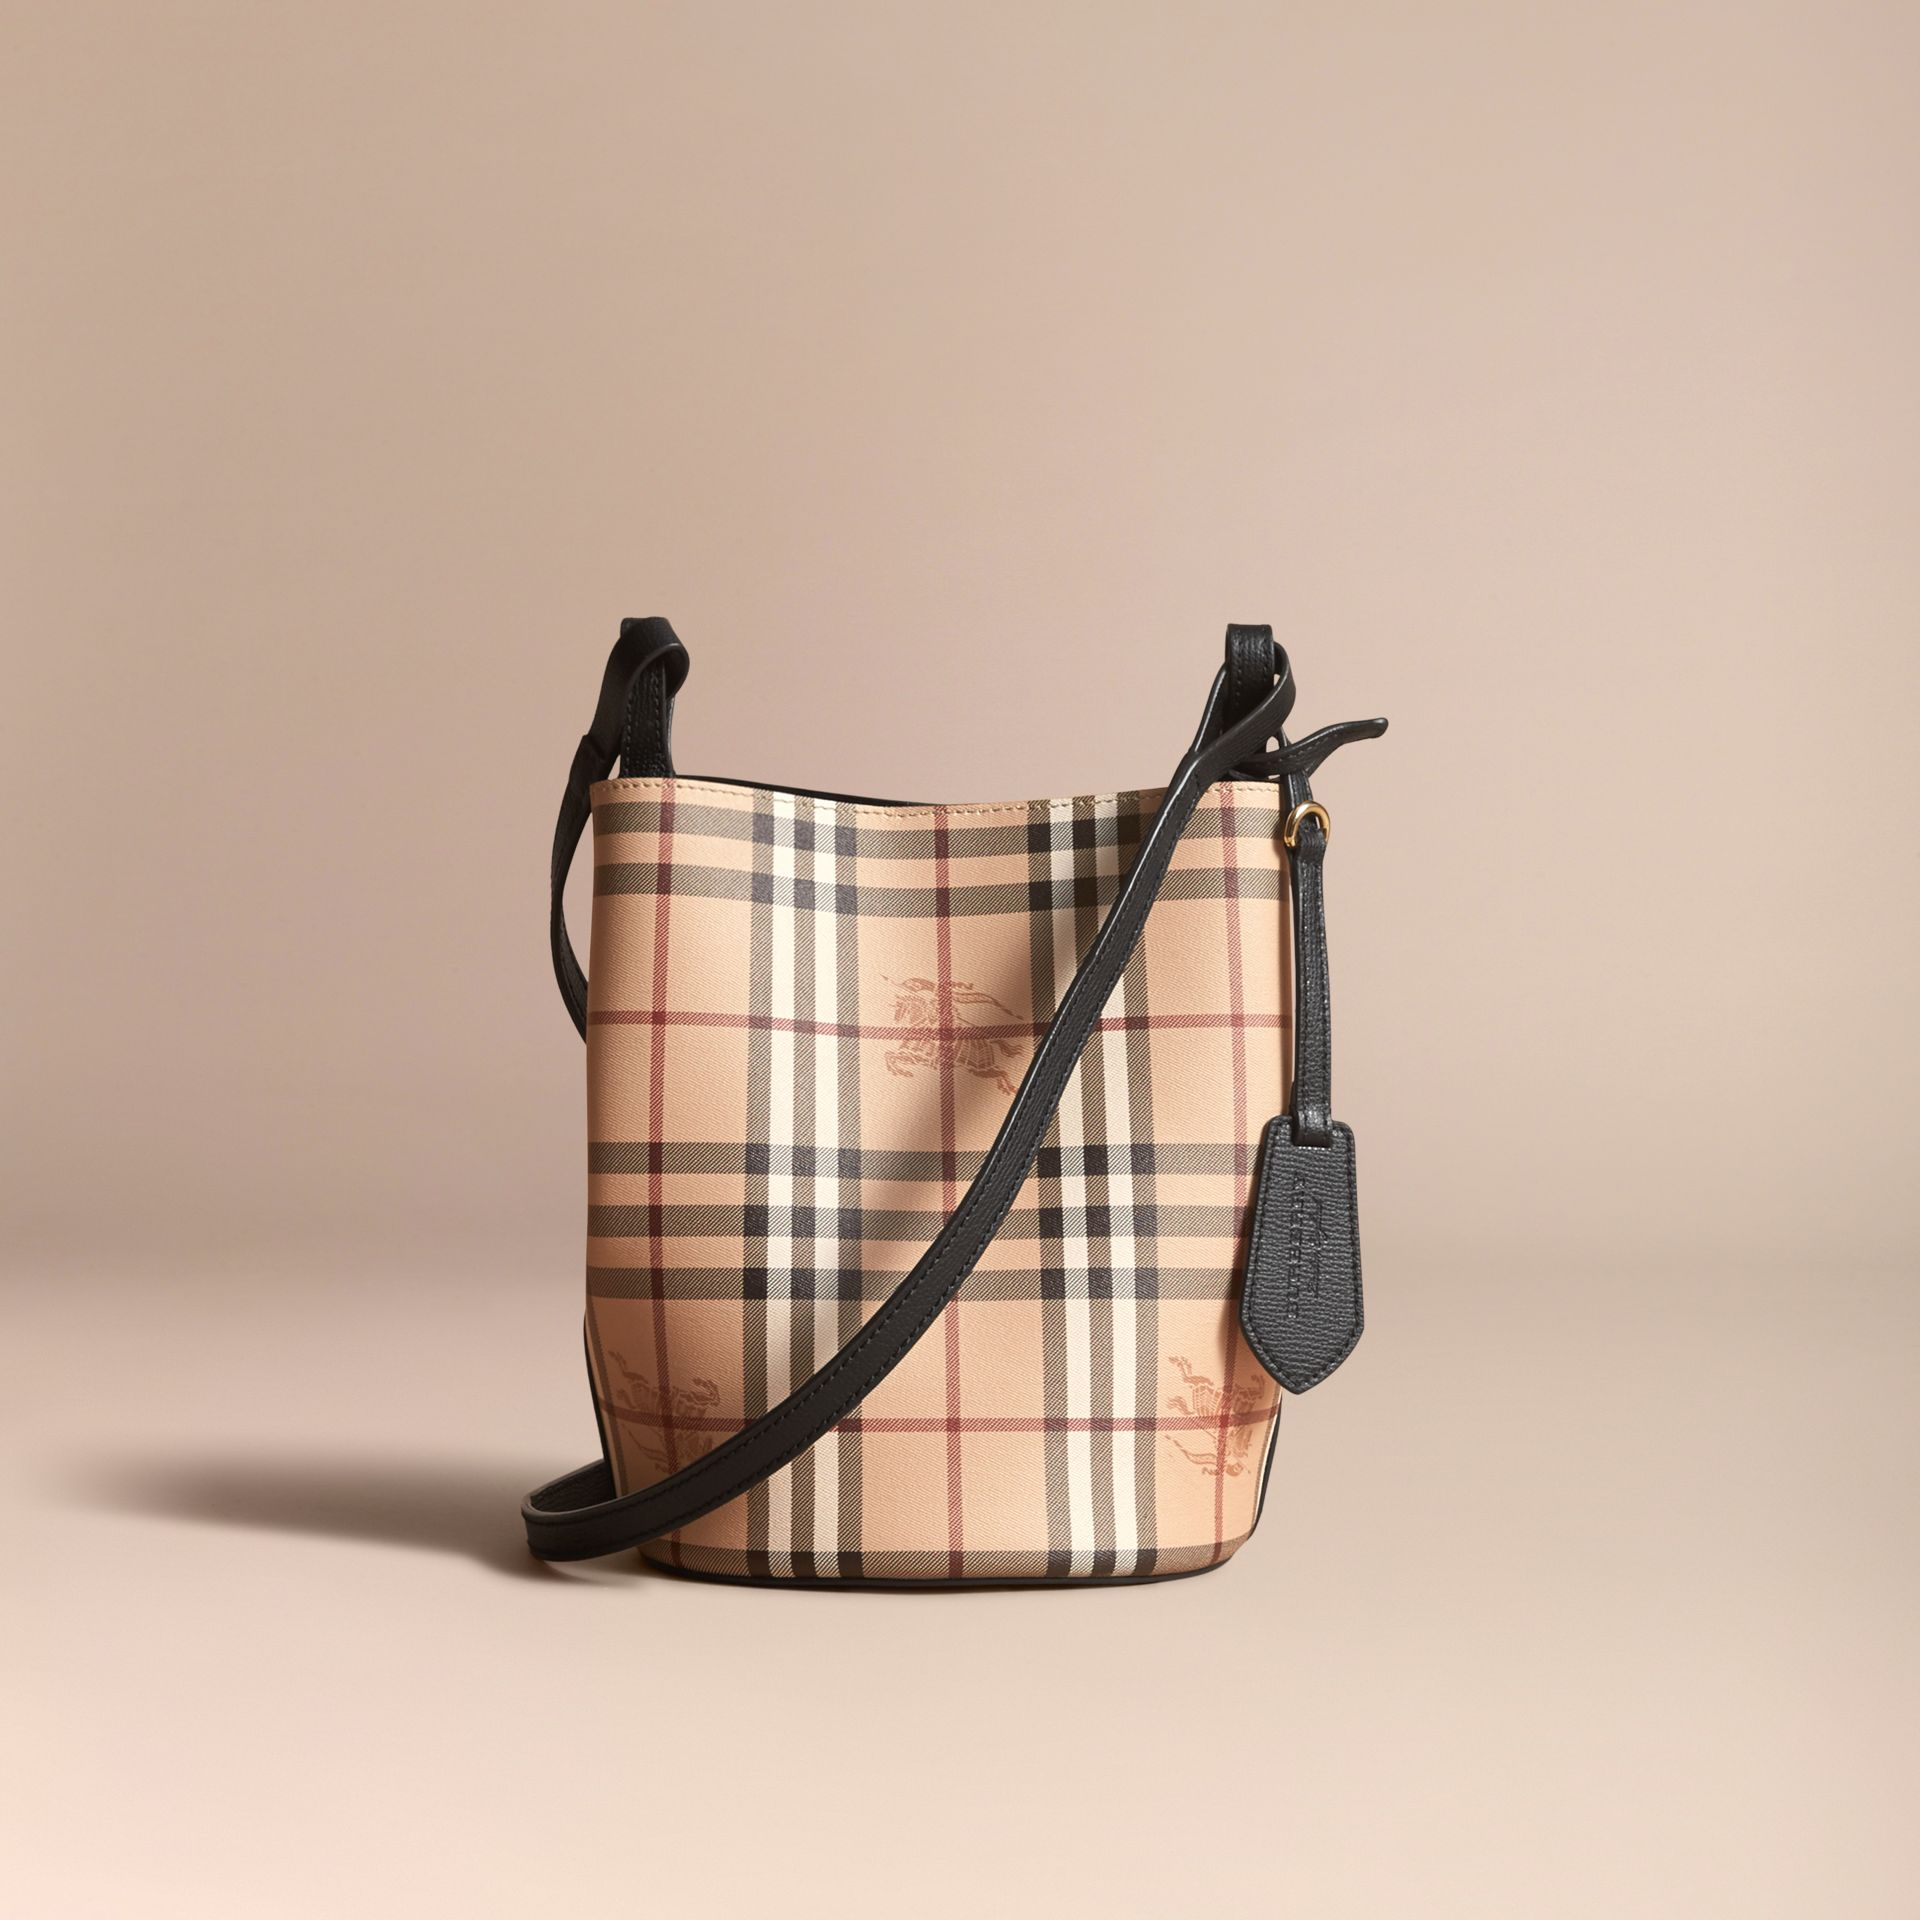 Leather and Haymarket Check Crossbody Bucket Bag in Black - Women | Burberry - gallery image 7